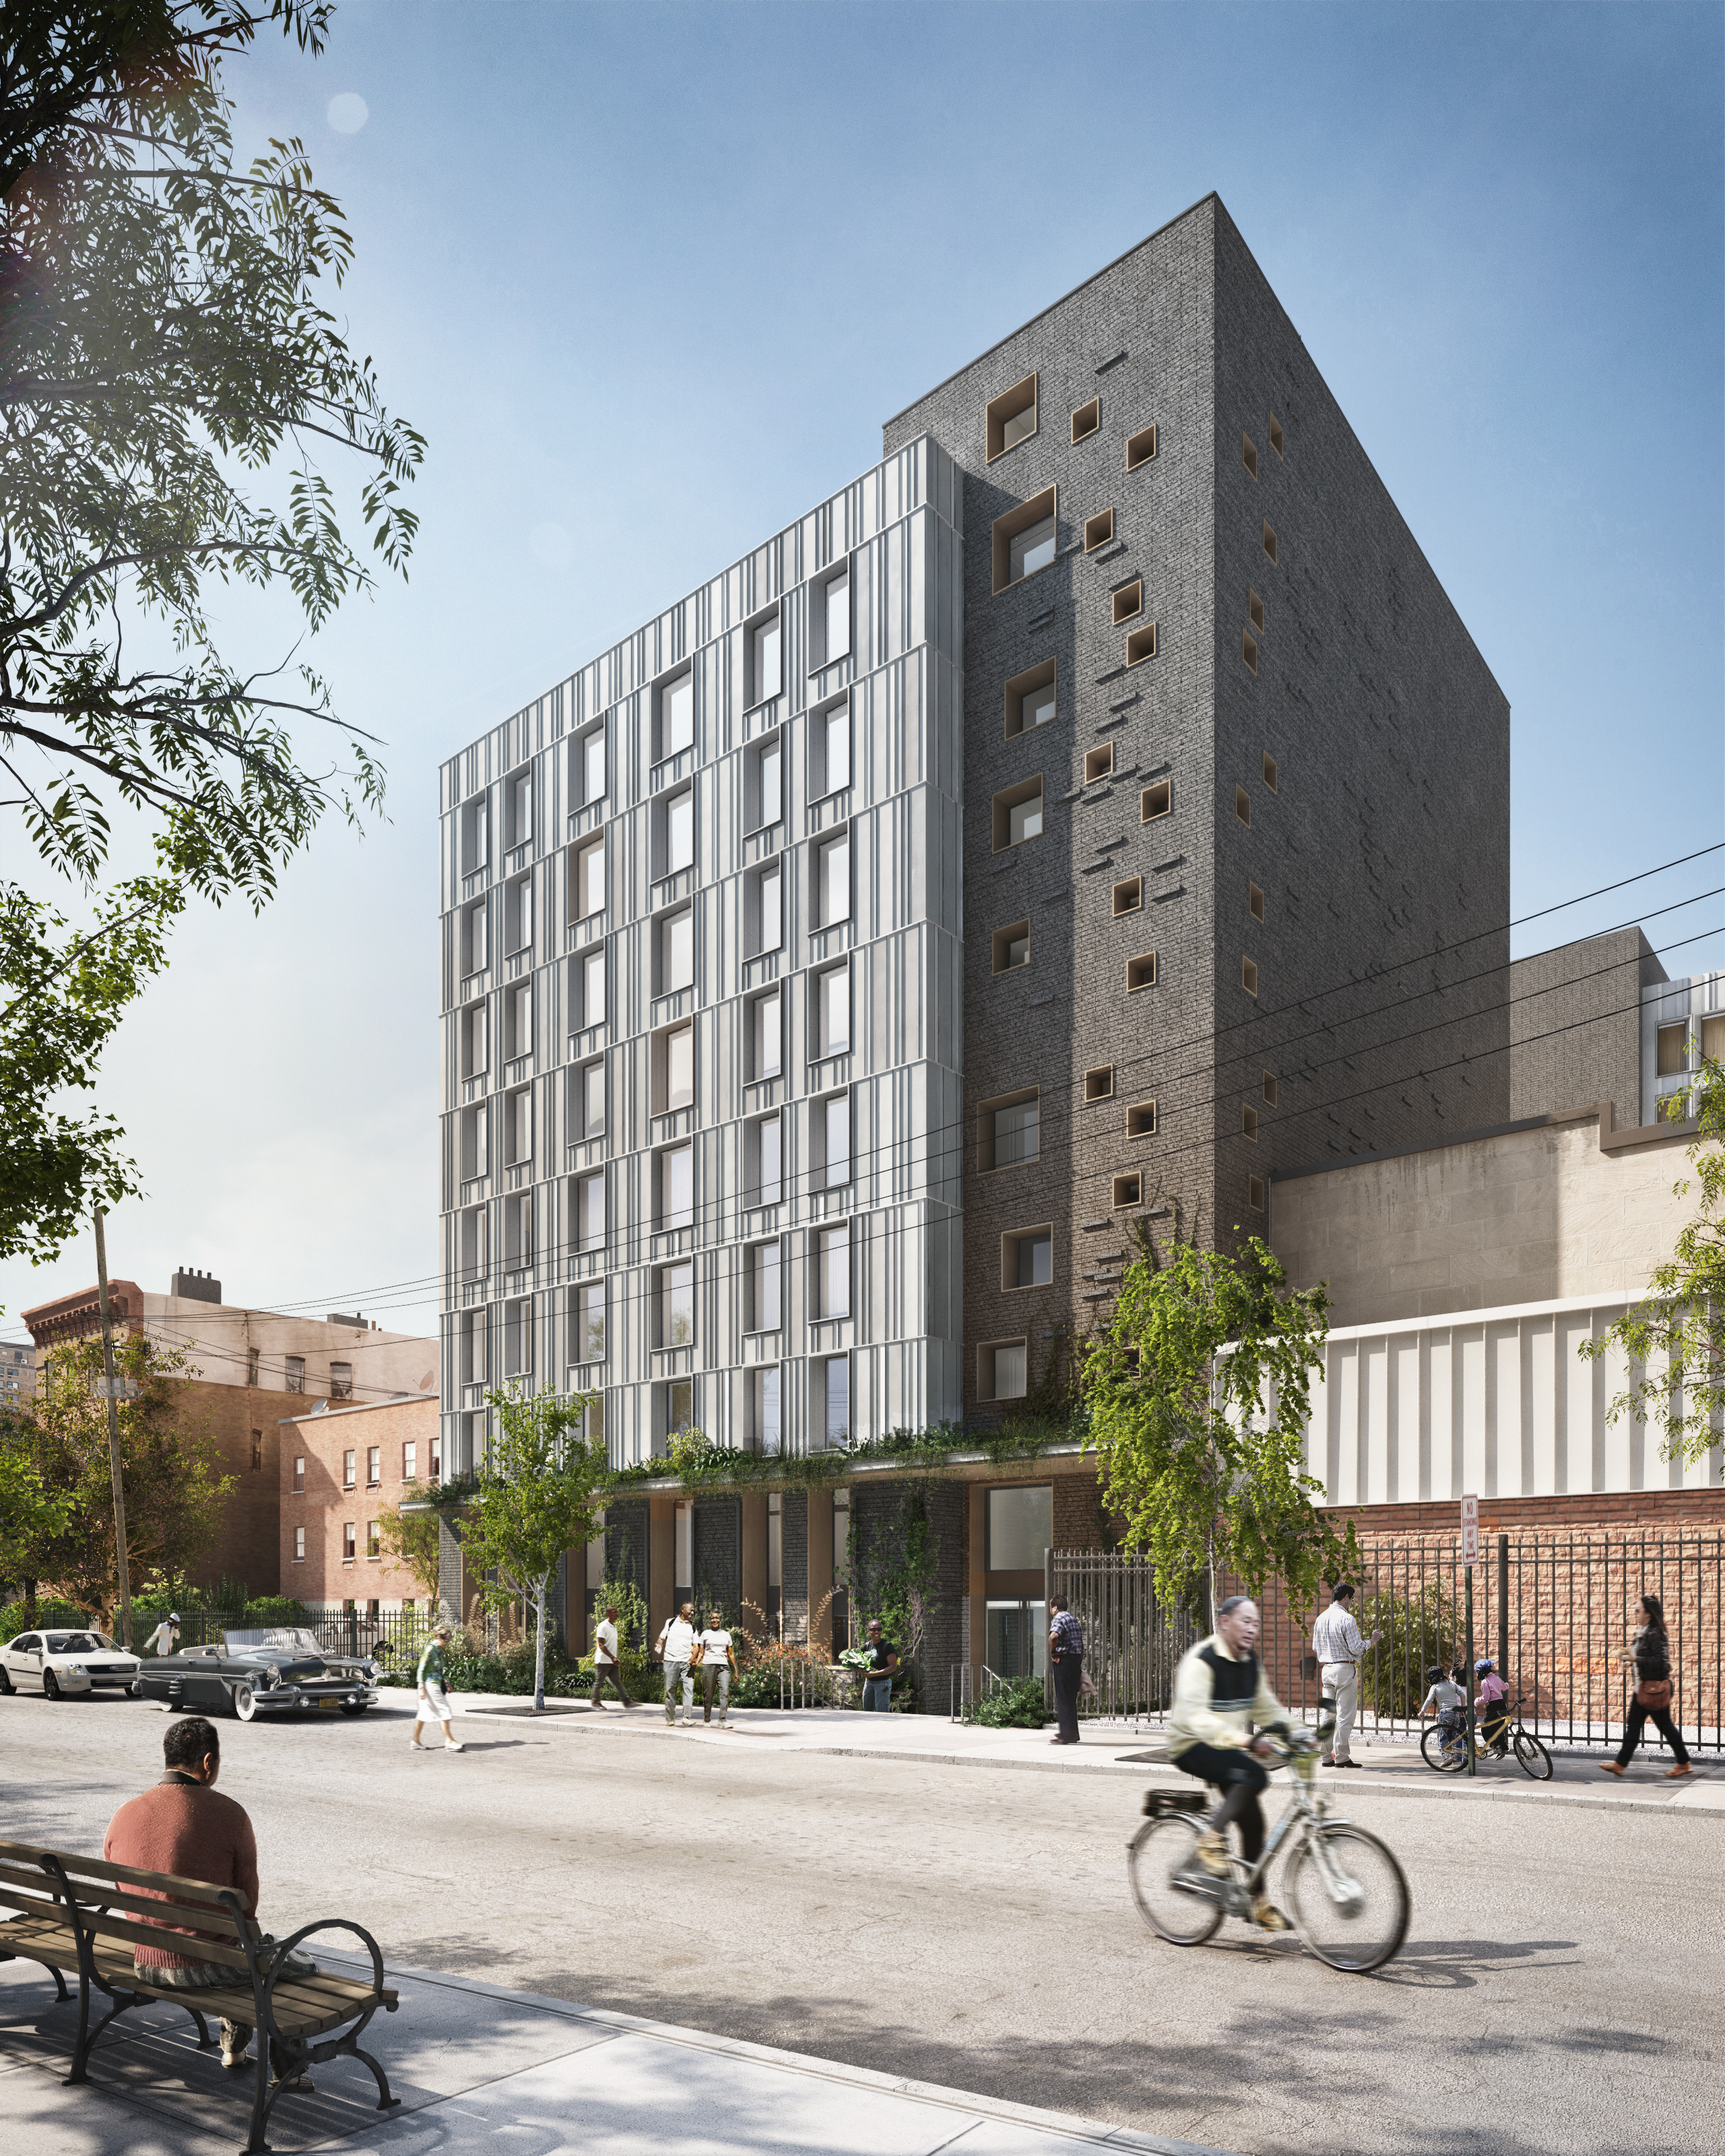 Section 8 Apartments Nyc: NYCHA, HPD And HDC Announce New 100 Percent Affordable